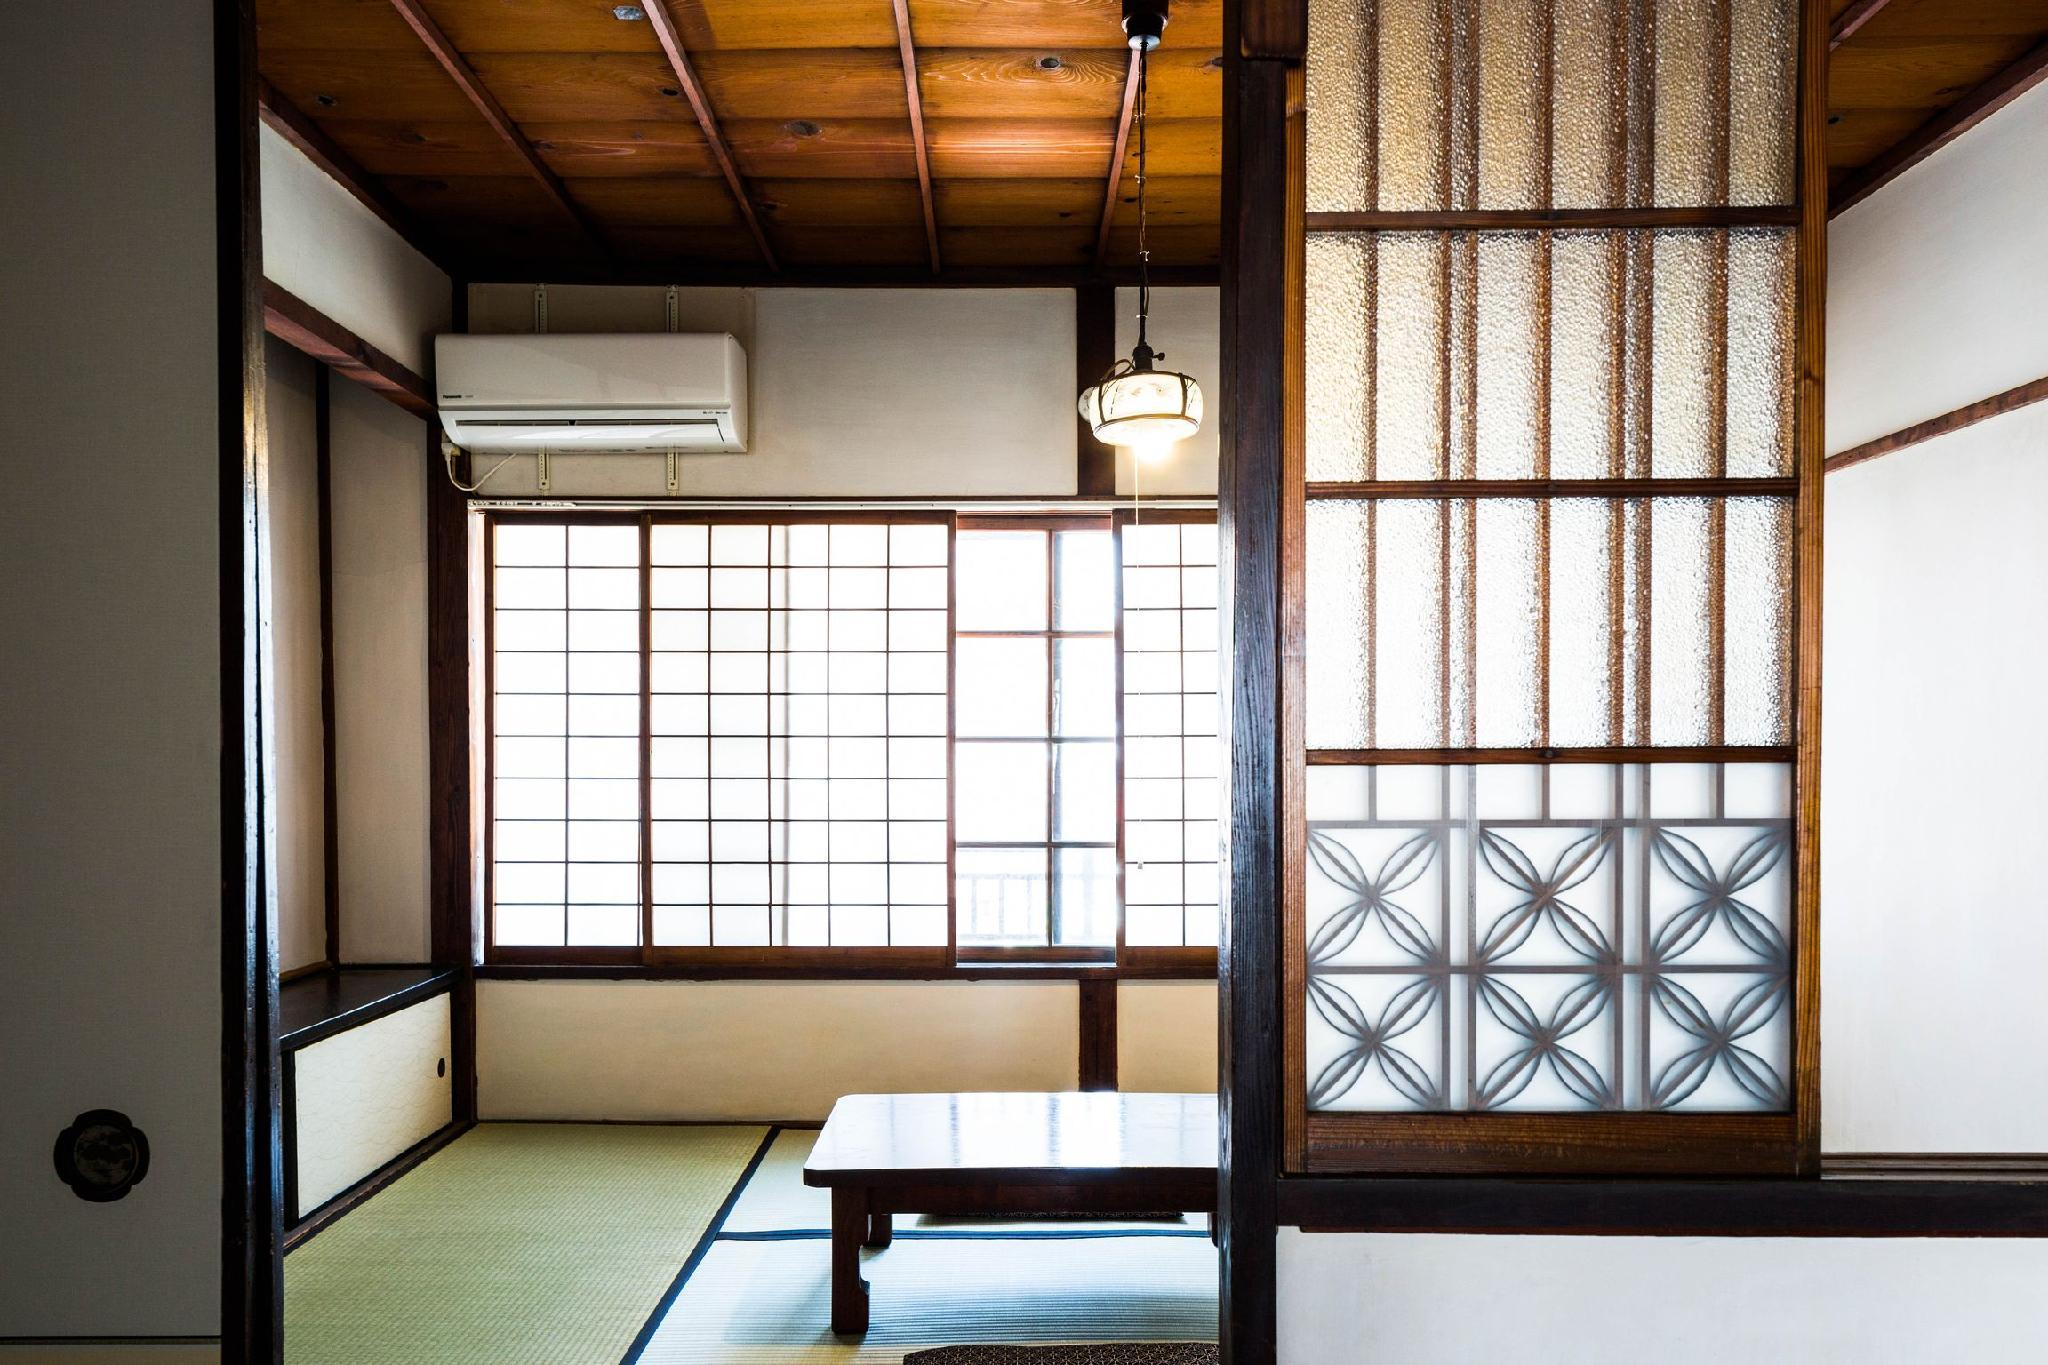 五號日式客房 - 需共用衛浴 (Go Japanese Style Room with Shared Bathroom)